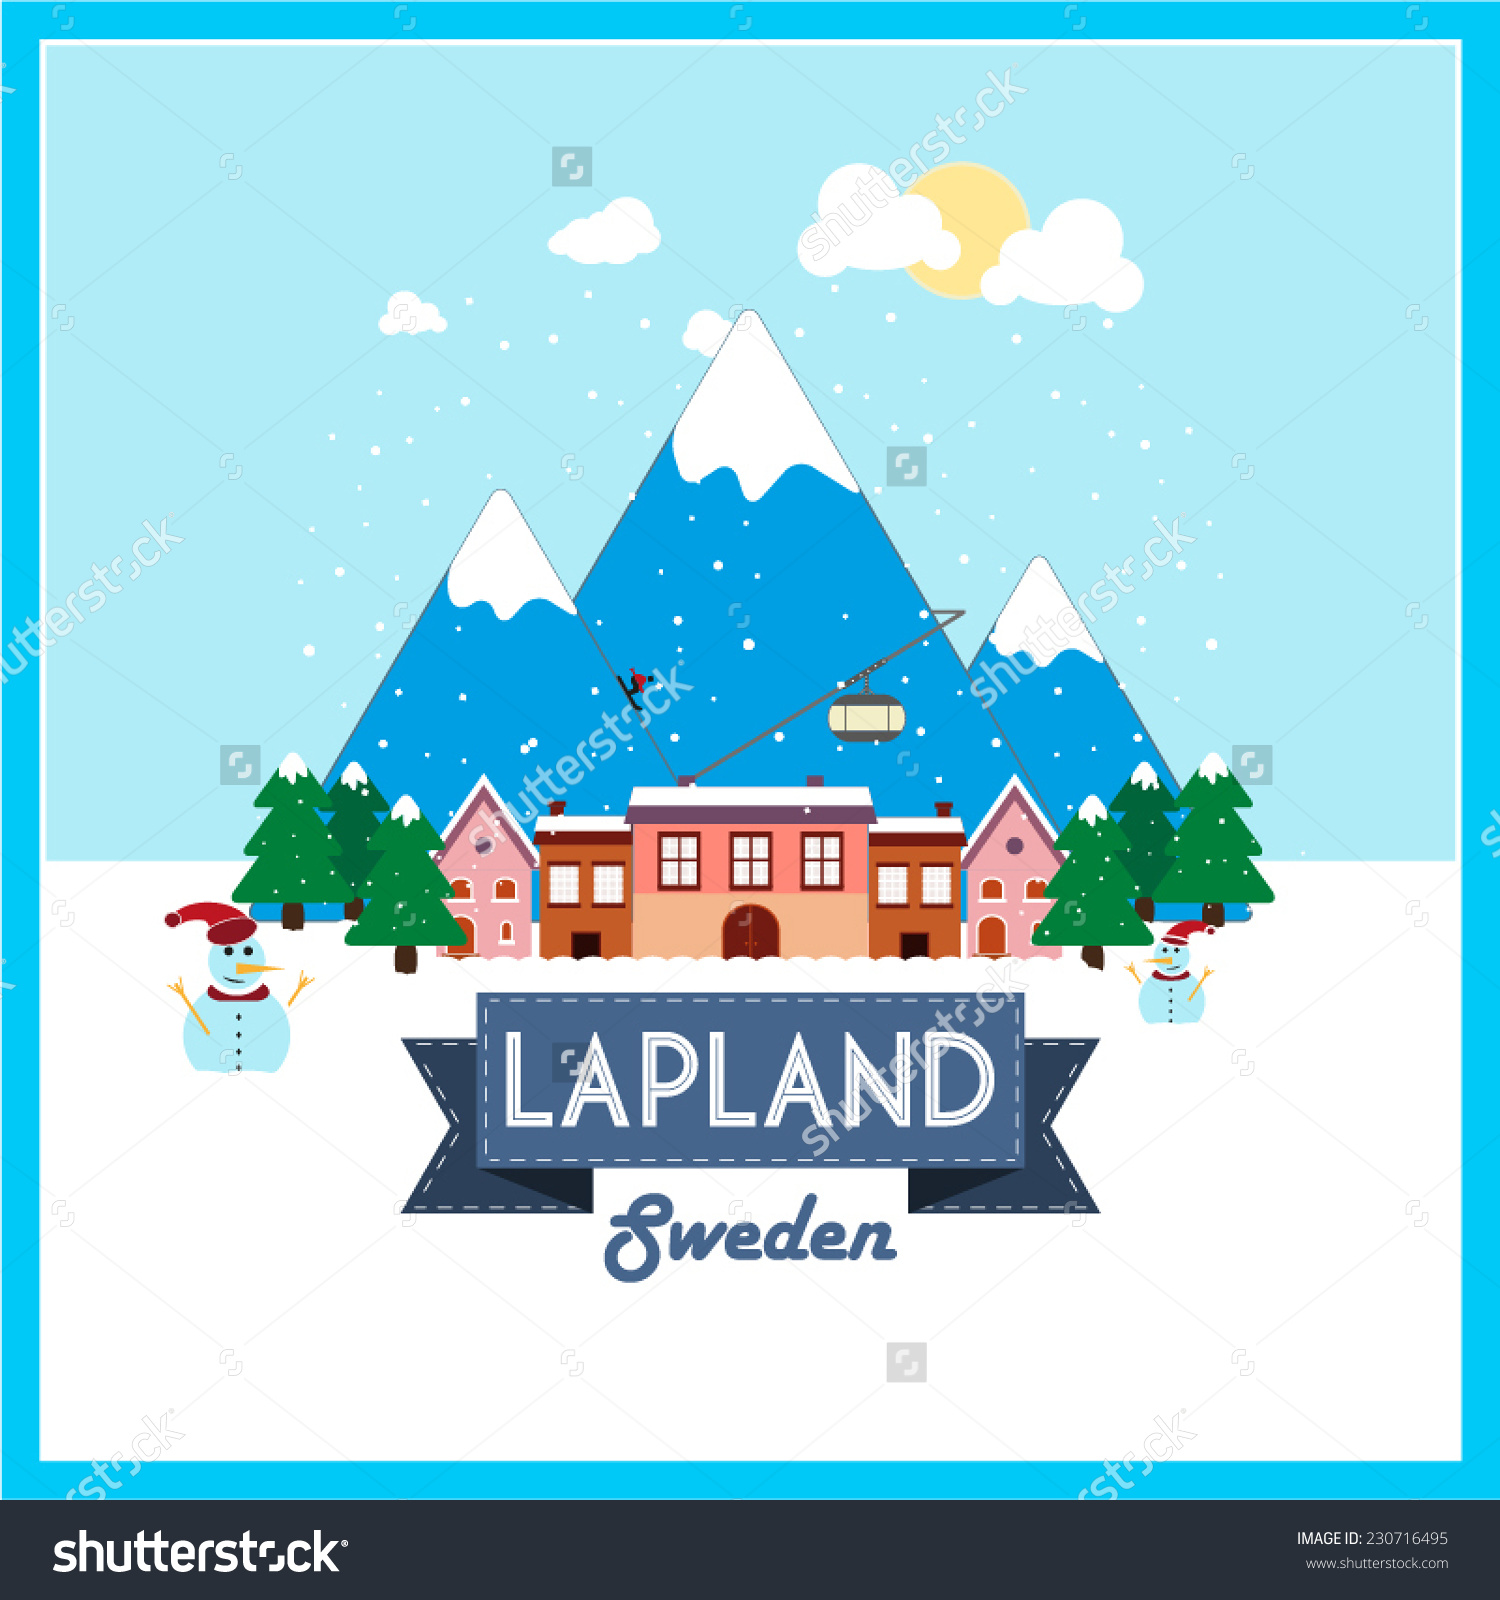 Lapland Sweden Winter Holiday Destination Flat Stock Vector.